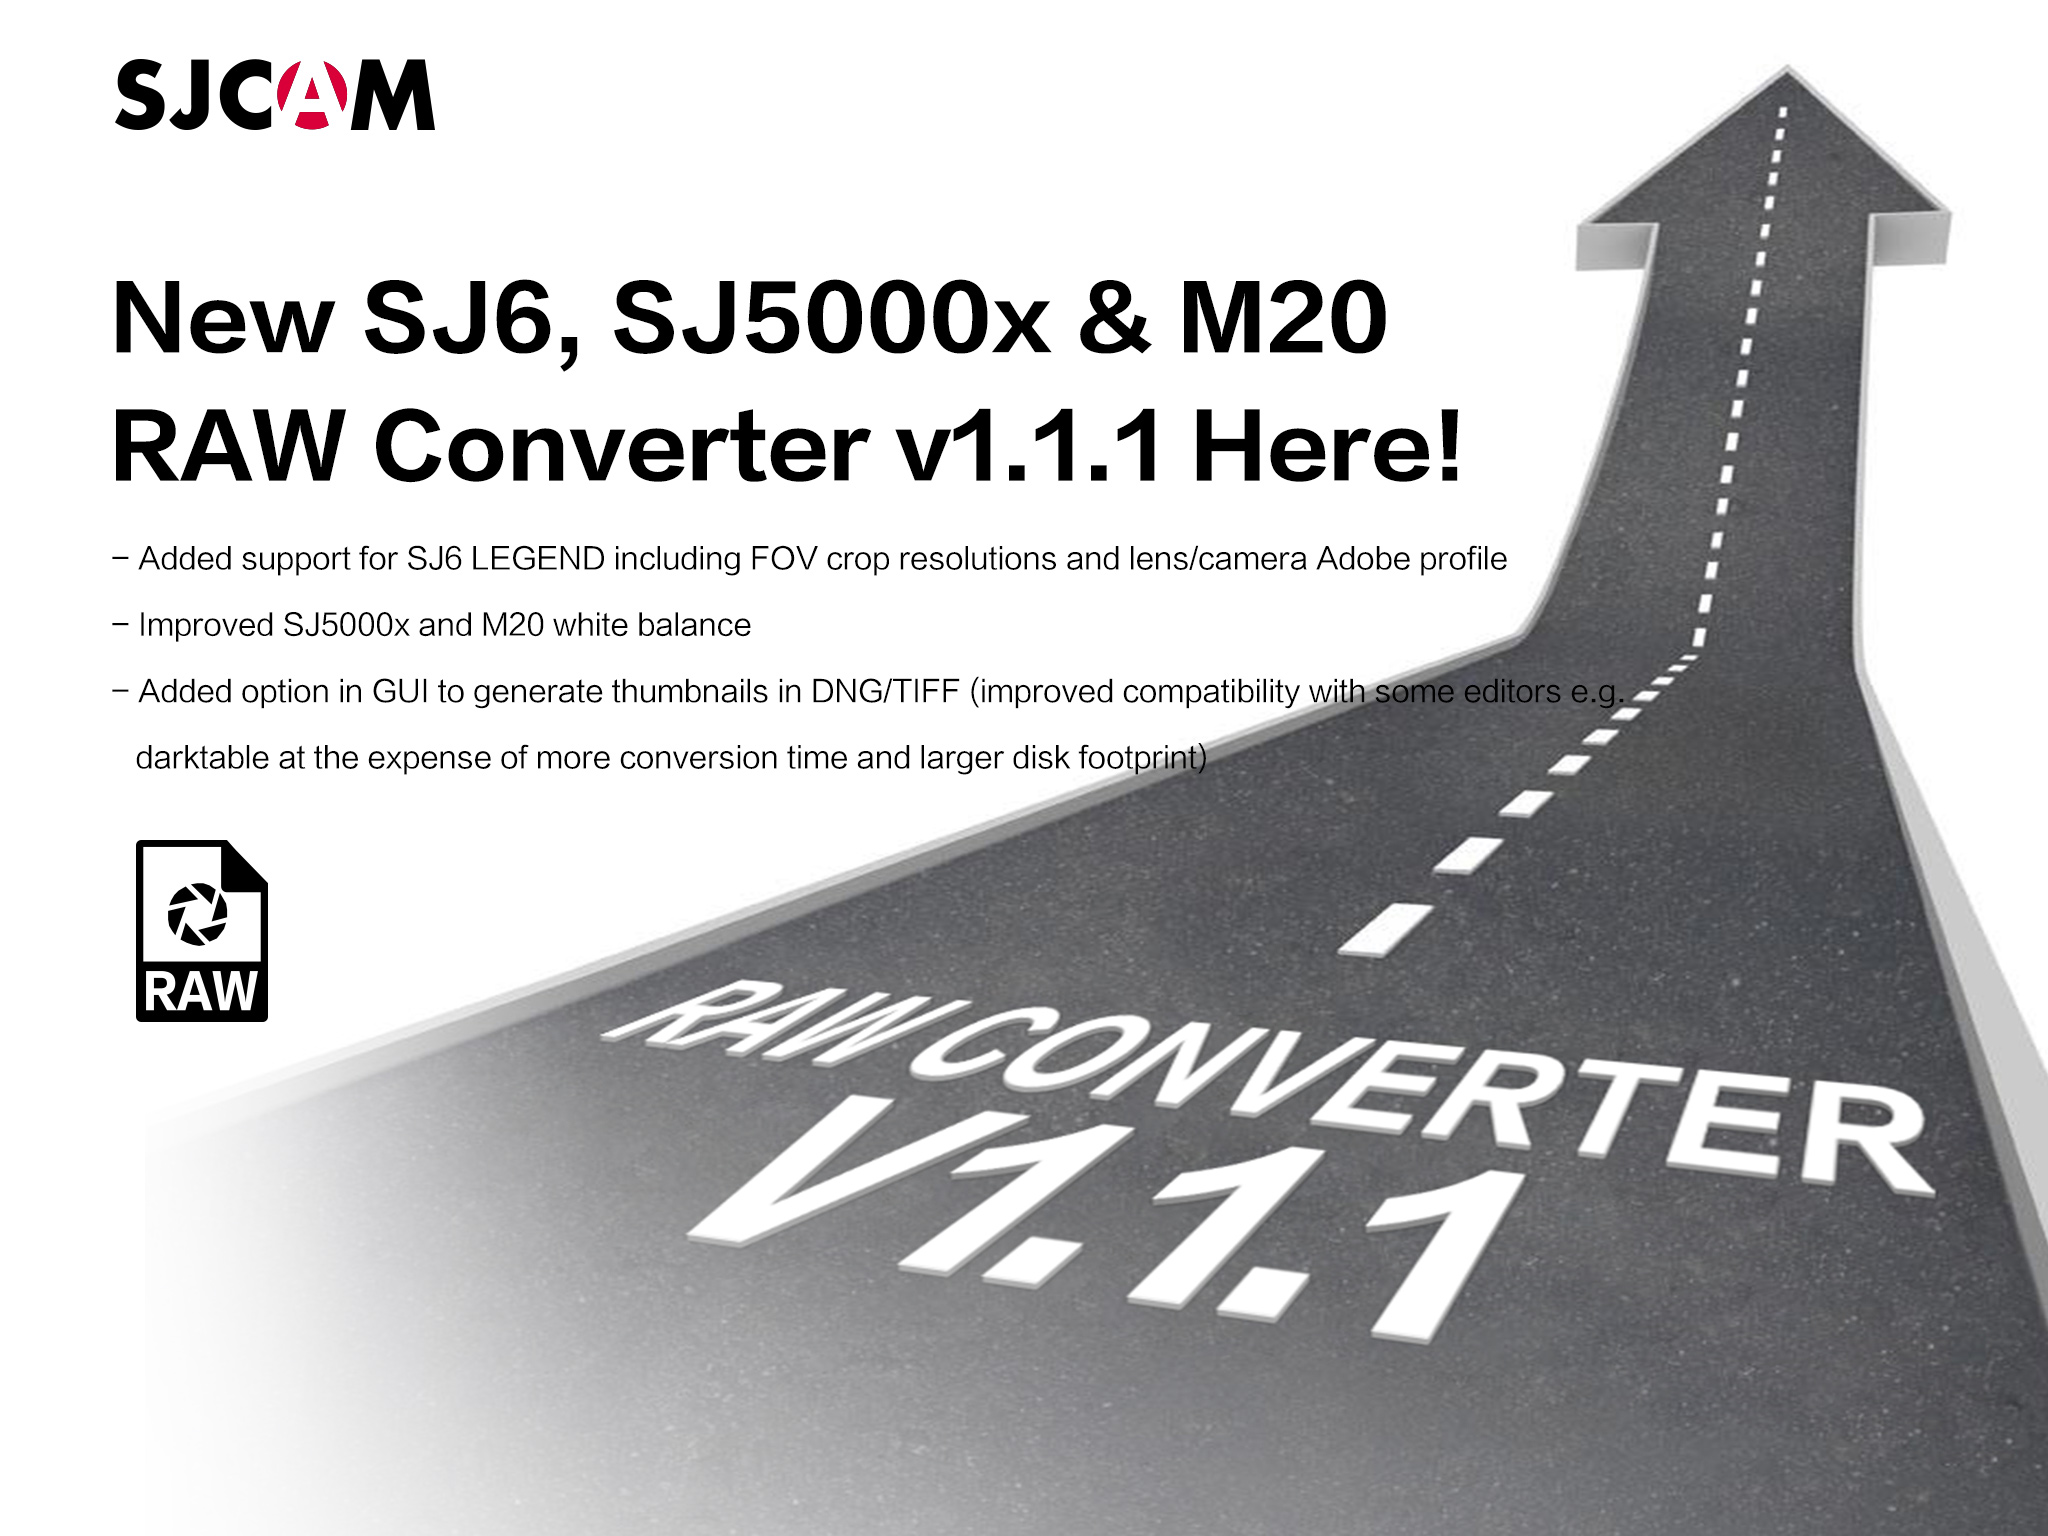 SJCAM SJ6 Legend, SJ5000x, M20 RAW v1.1.1 Converter Tool Released!